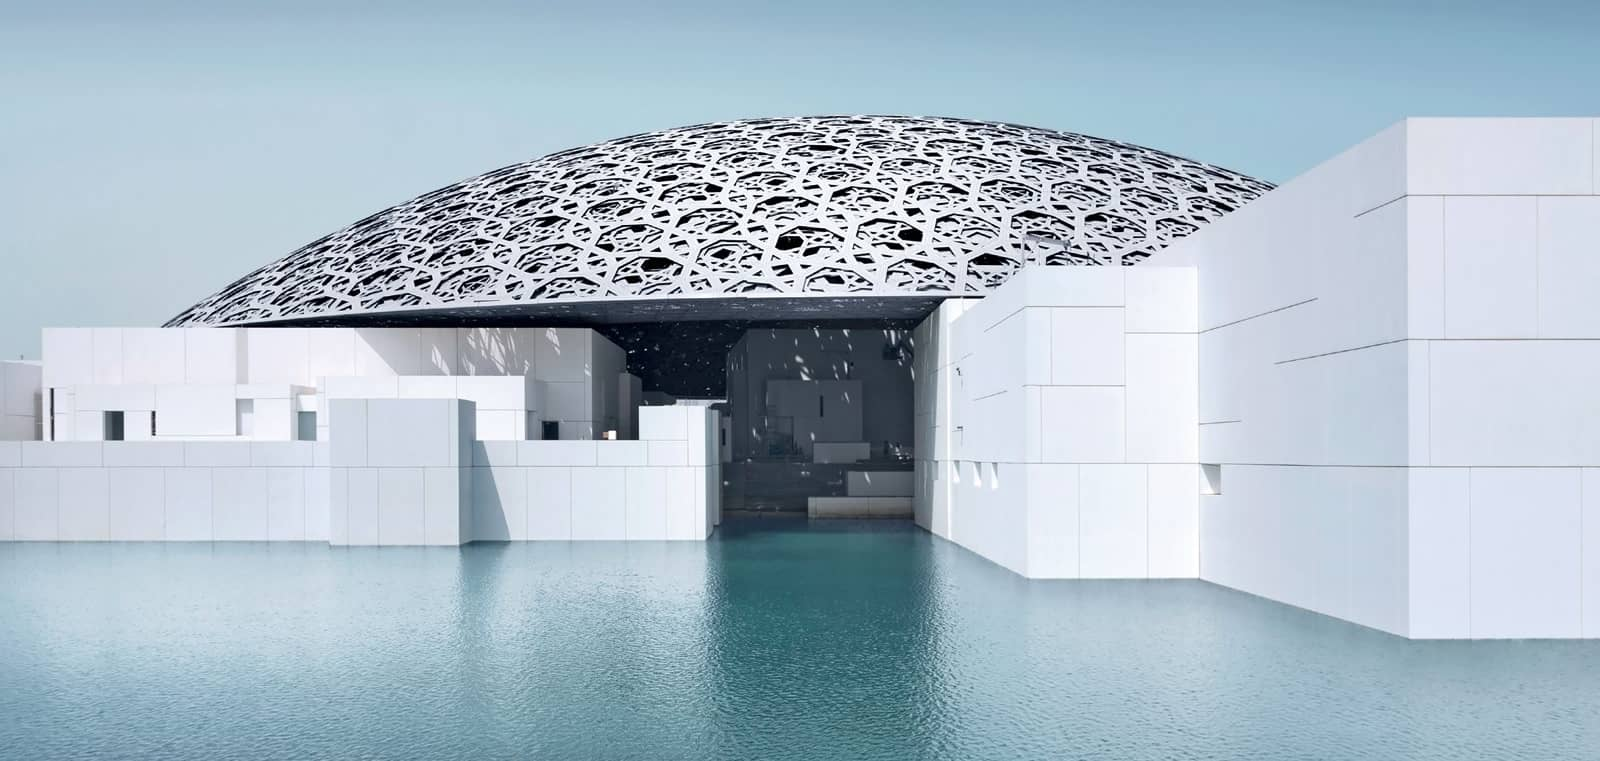 Abu Dhabi Continues To Evolve In Harmony With Its Traditions